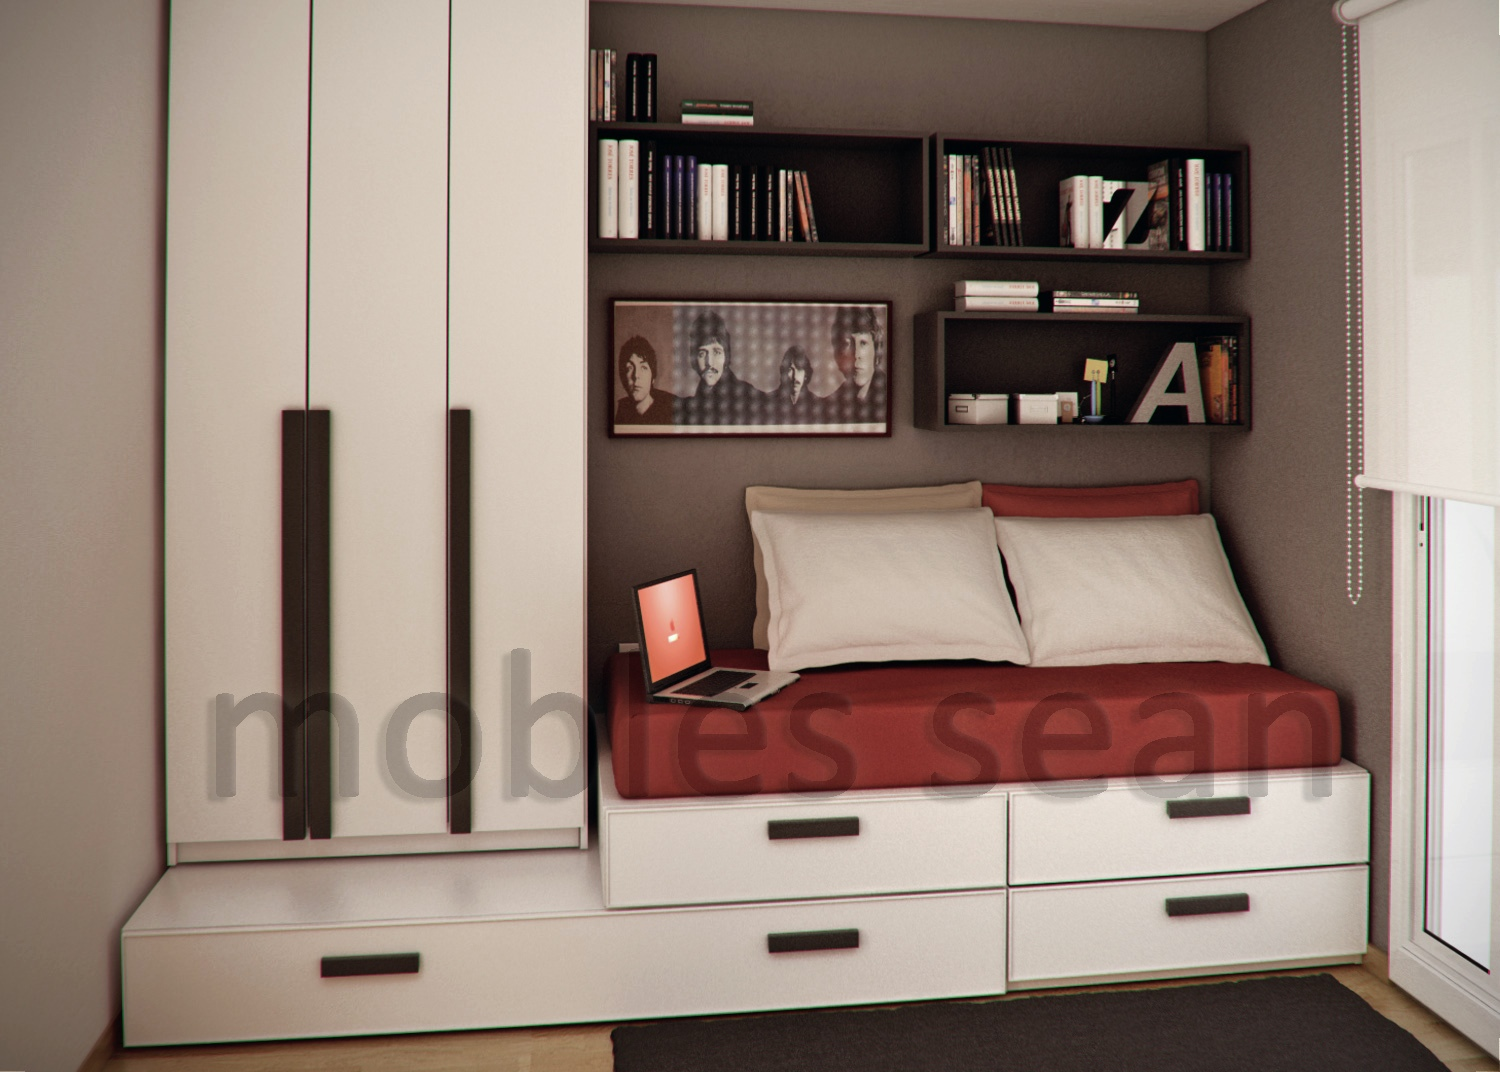 Simple bedroom design for boys - Simple Bedroom Design For Boys 53